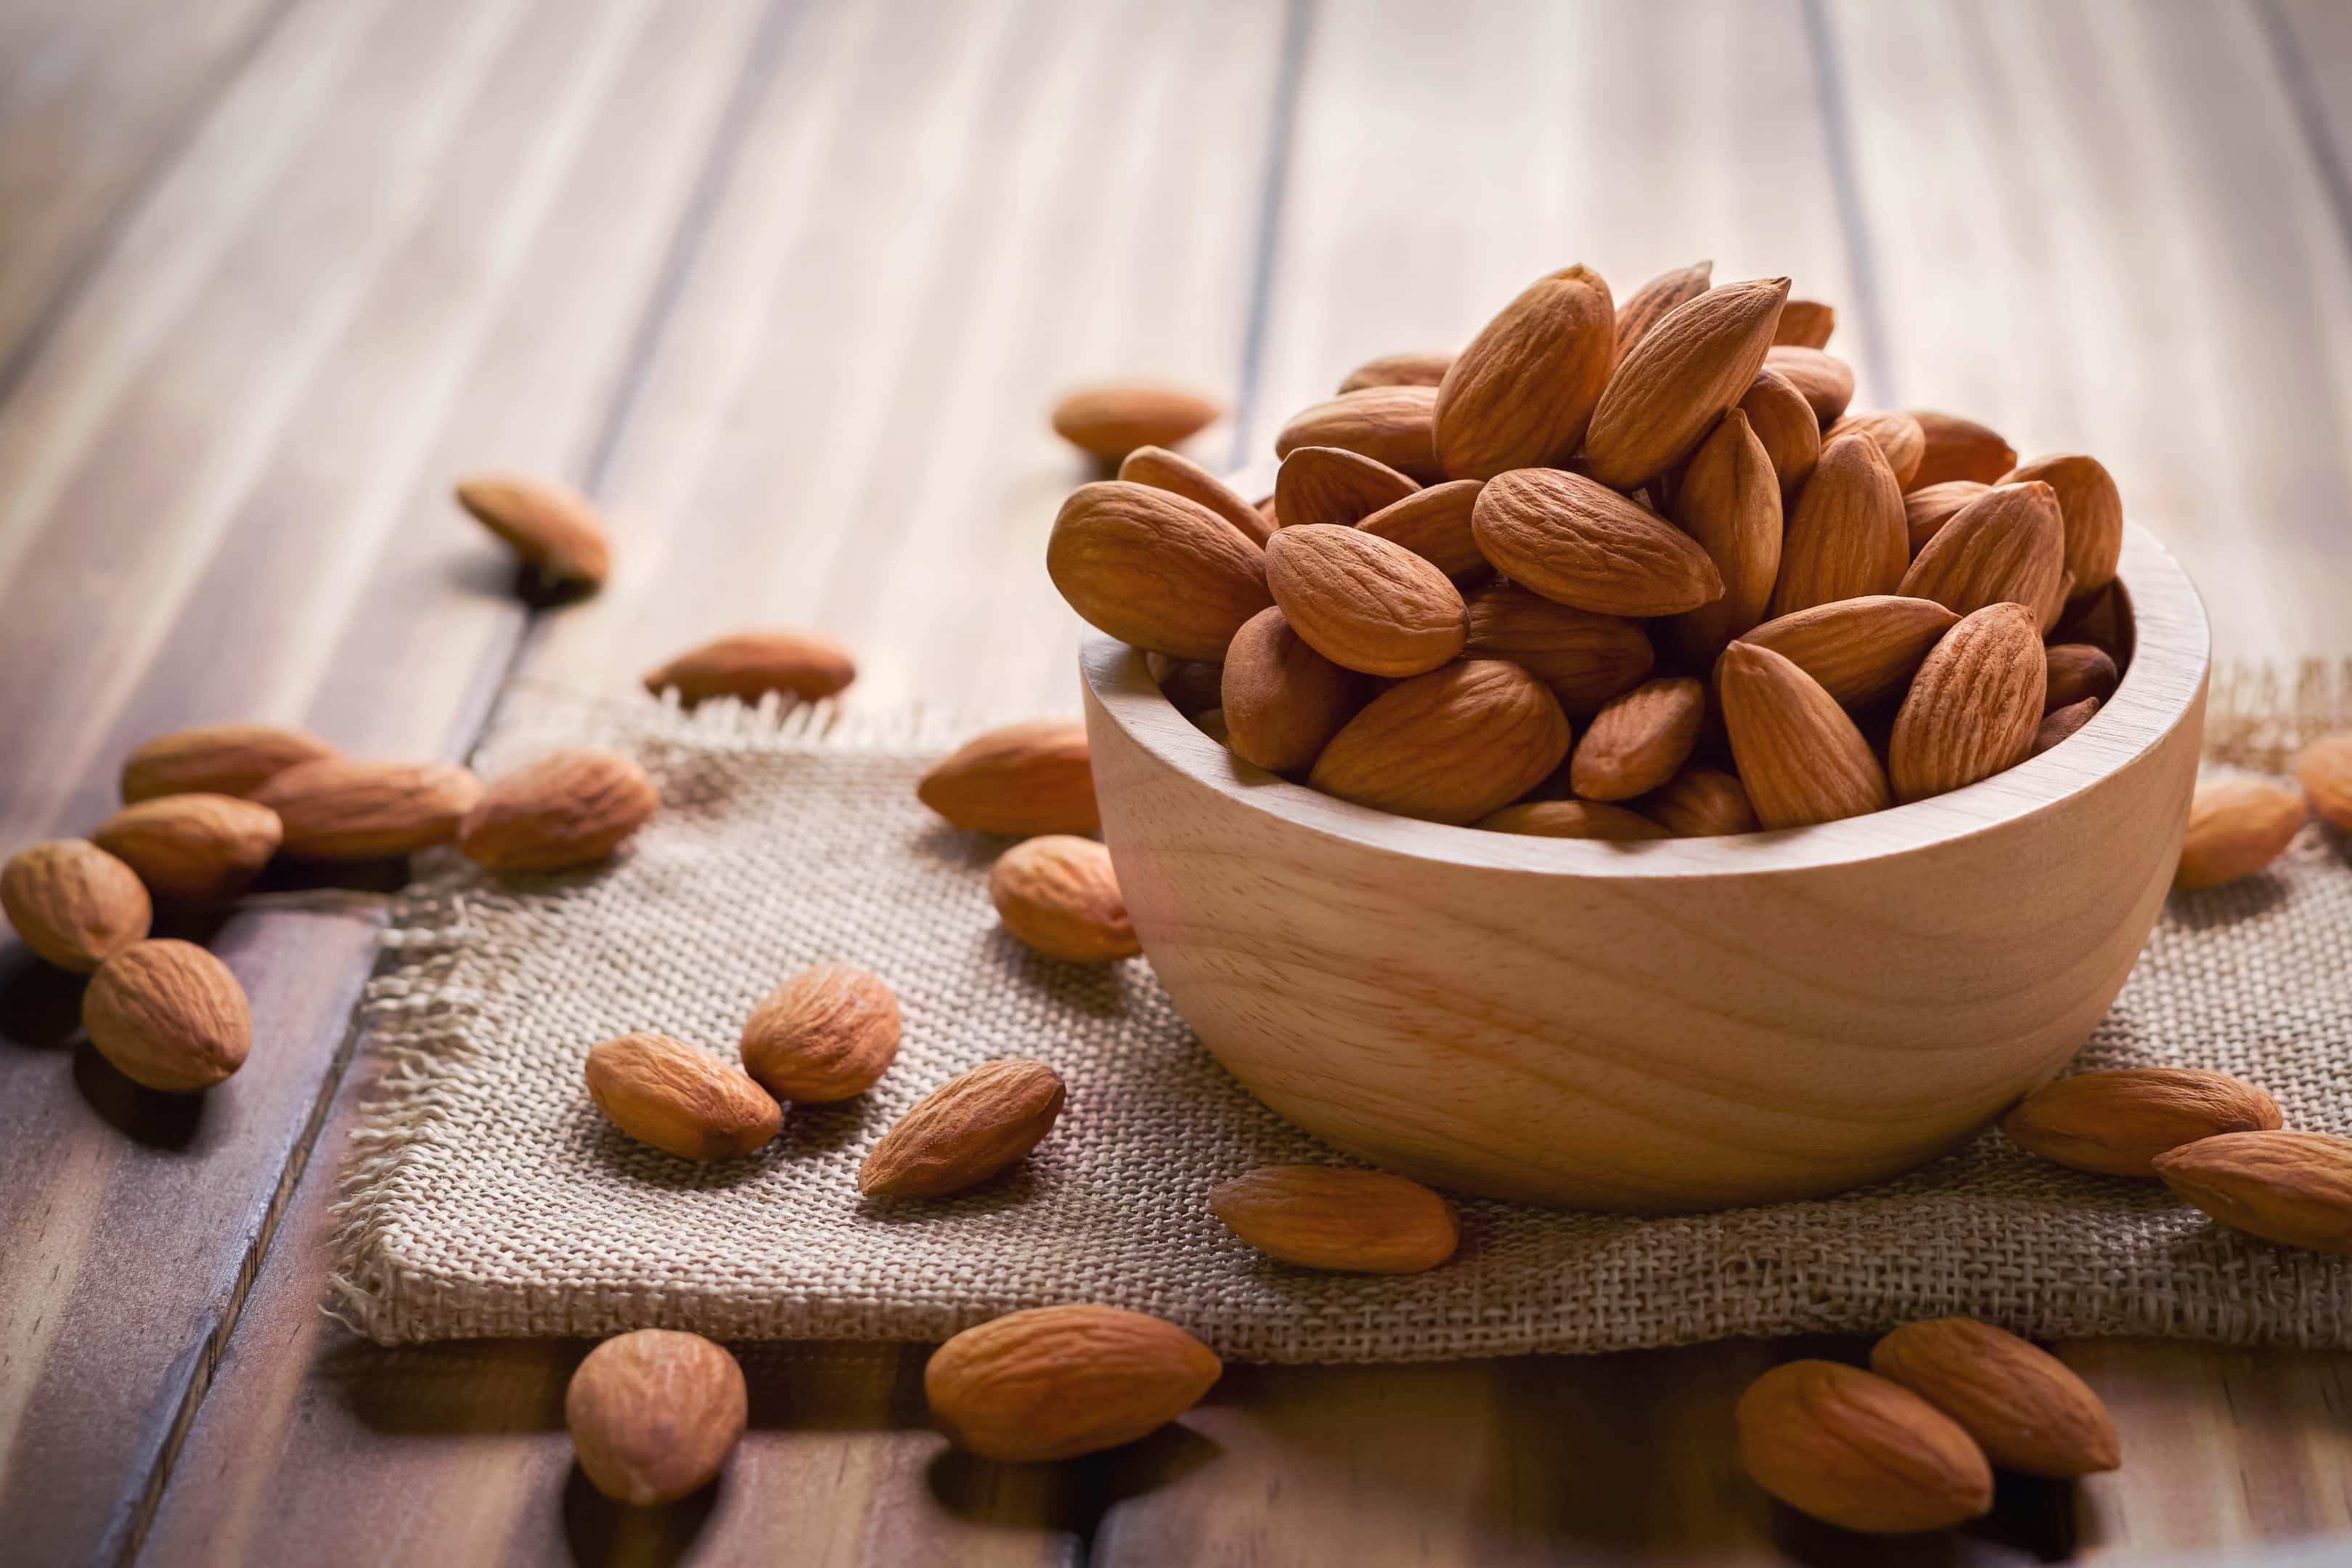 Almonds in wooden bowl on wooden table